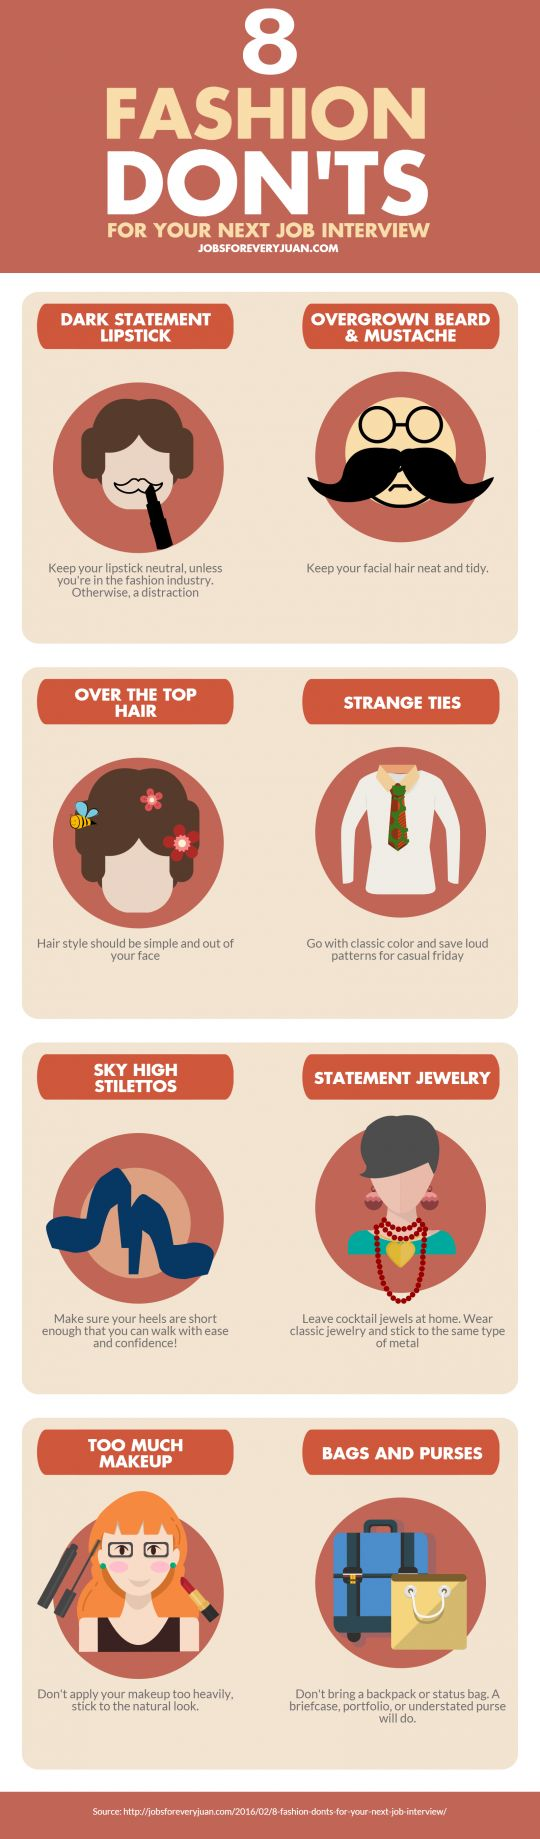 best images about job interview tips interview 8 fashion don ts for your next job interview infographic